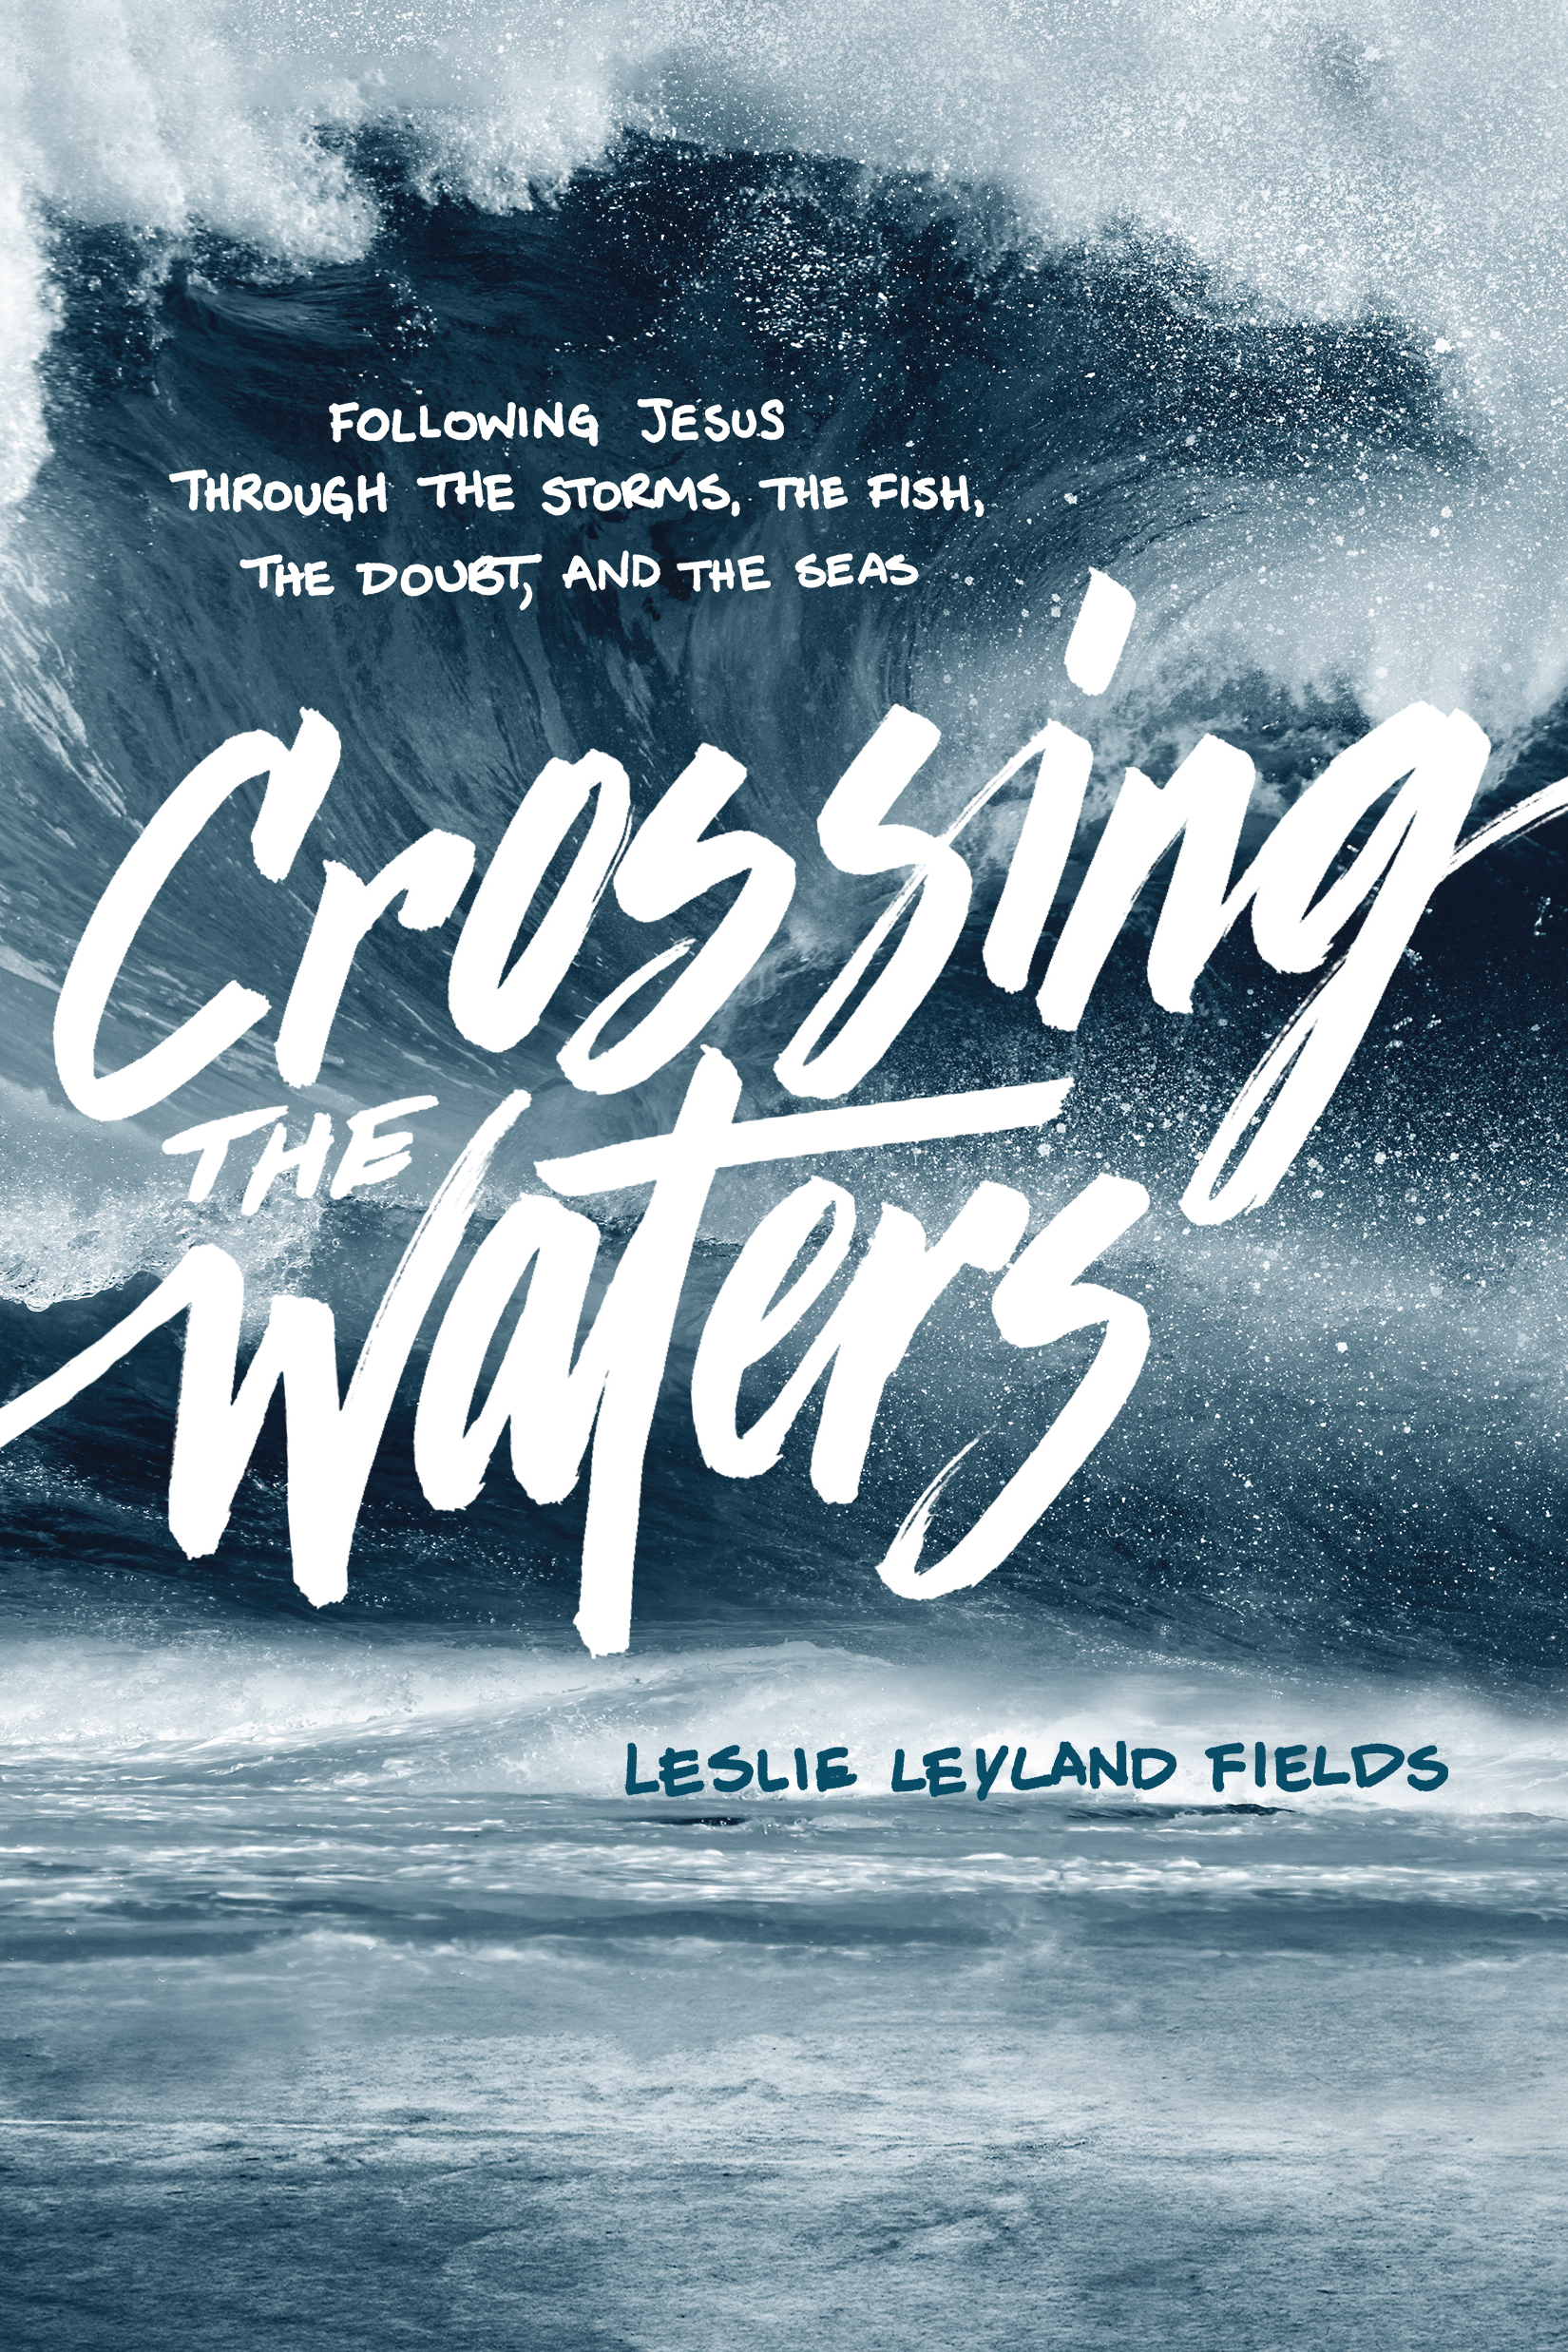 Cover of Crossing the Waters, by Leslie Leyland Fields